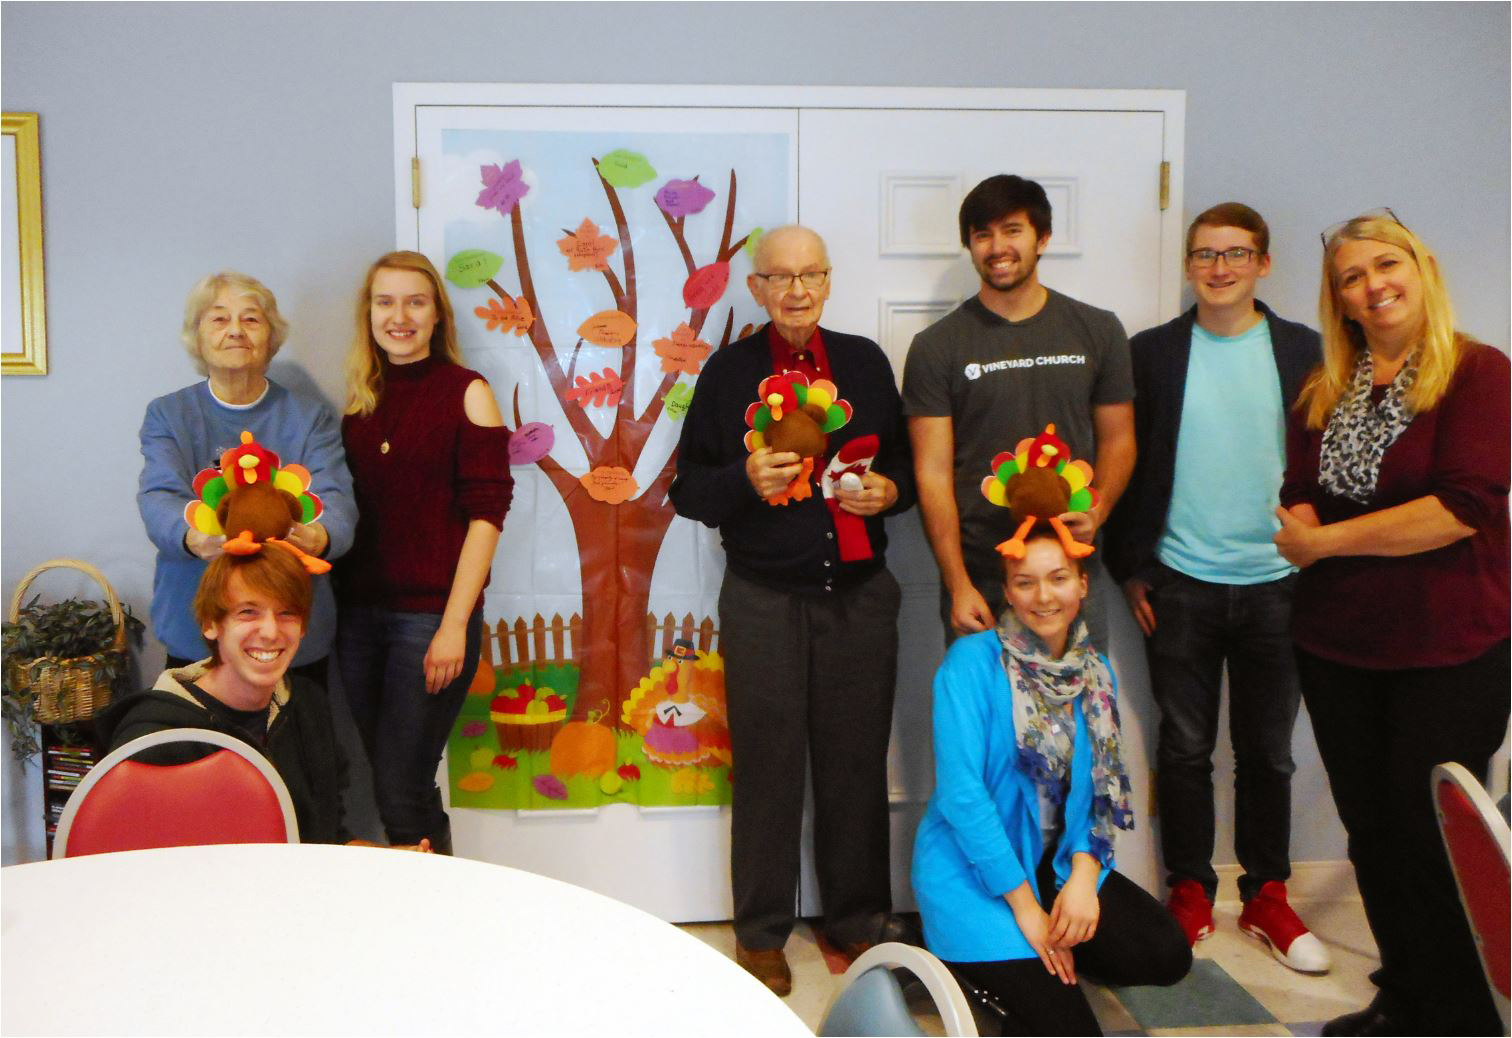 Students Ian Macdonald, Kayla Richardson, Laurel Green, Trevor Owens and Paul Nichols with residents Joyce Vembre and Eugene Dunn. Provided photo